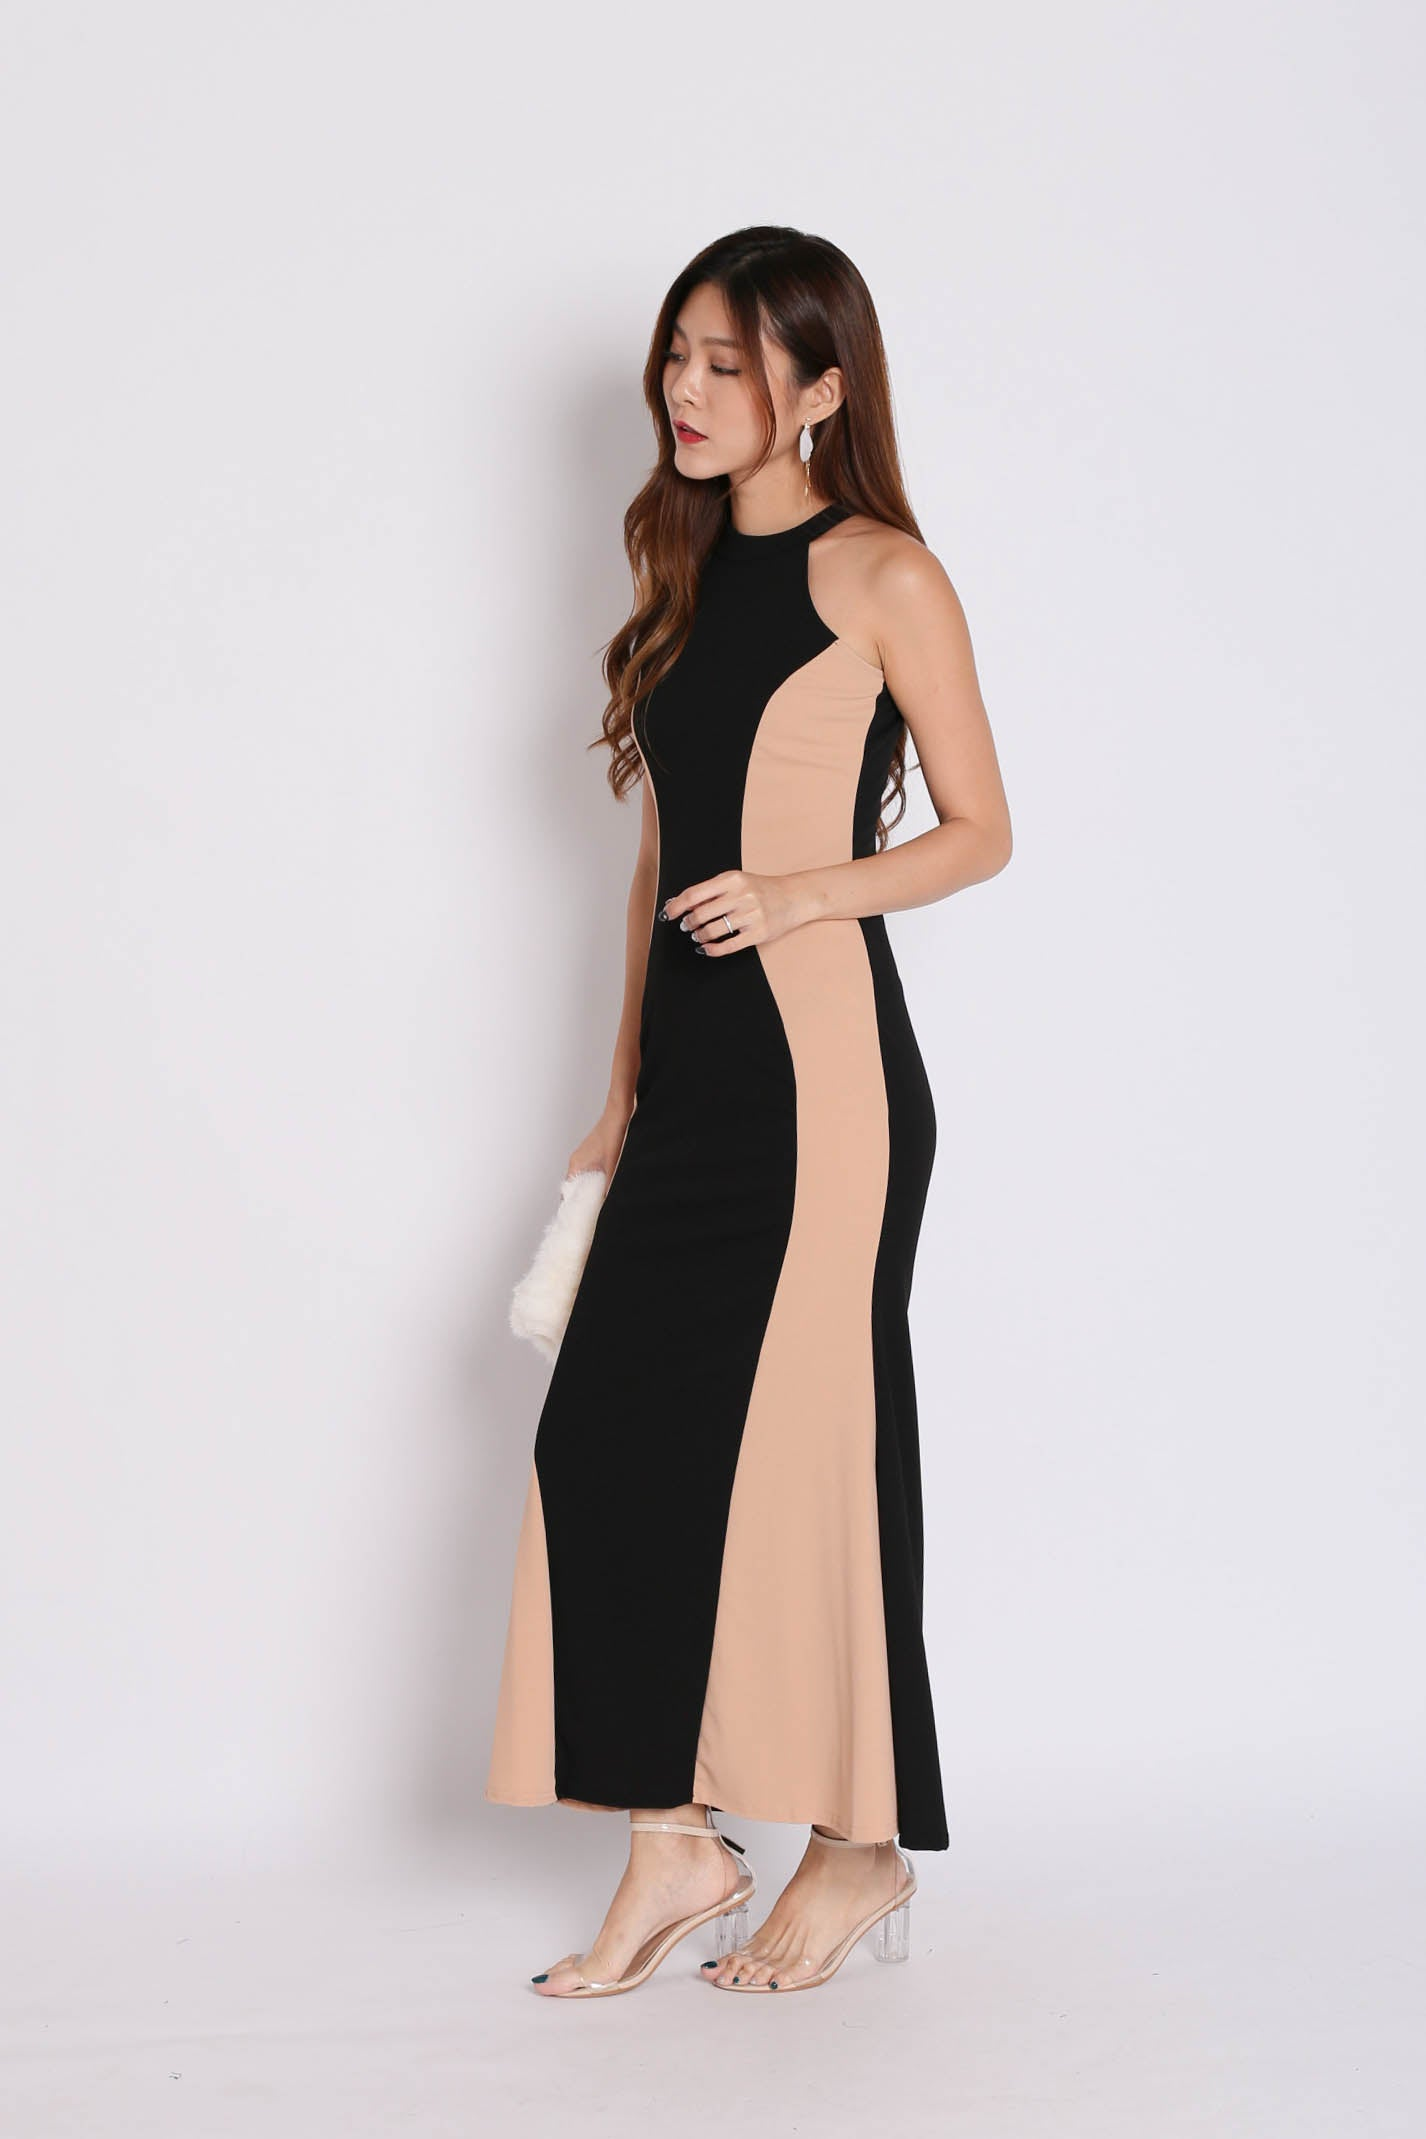 VEL HOURGLASS DRESS (NUDE/ BLACK)